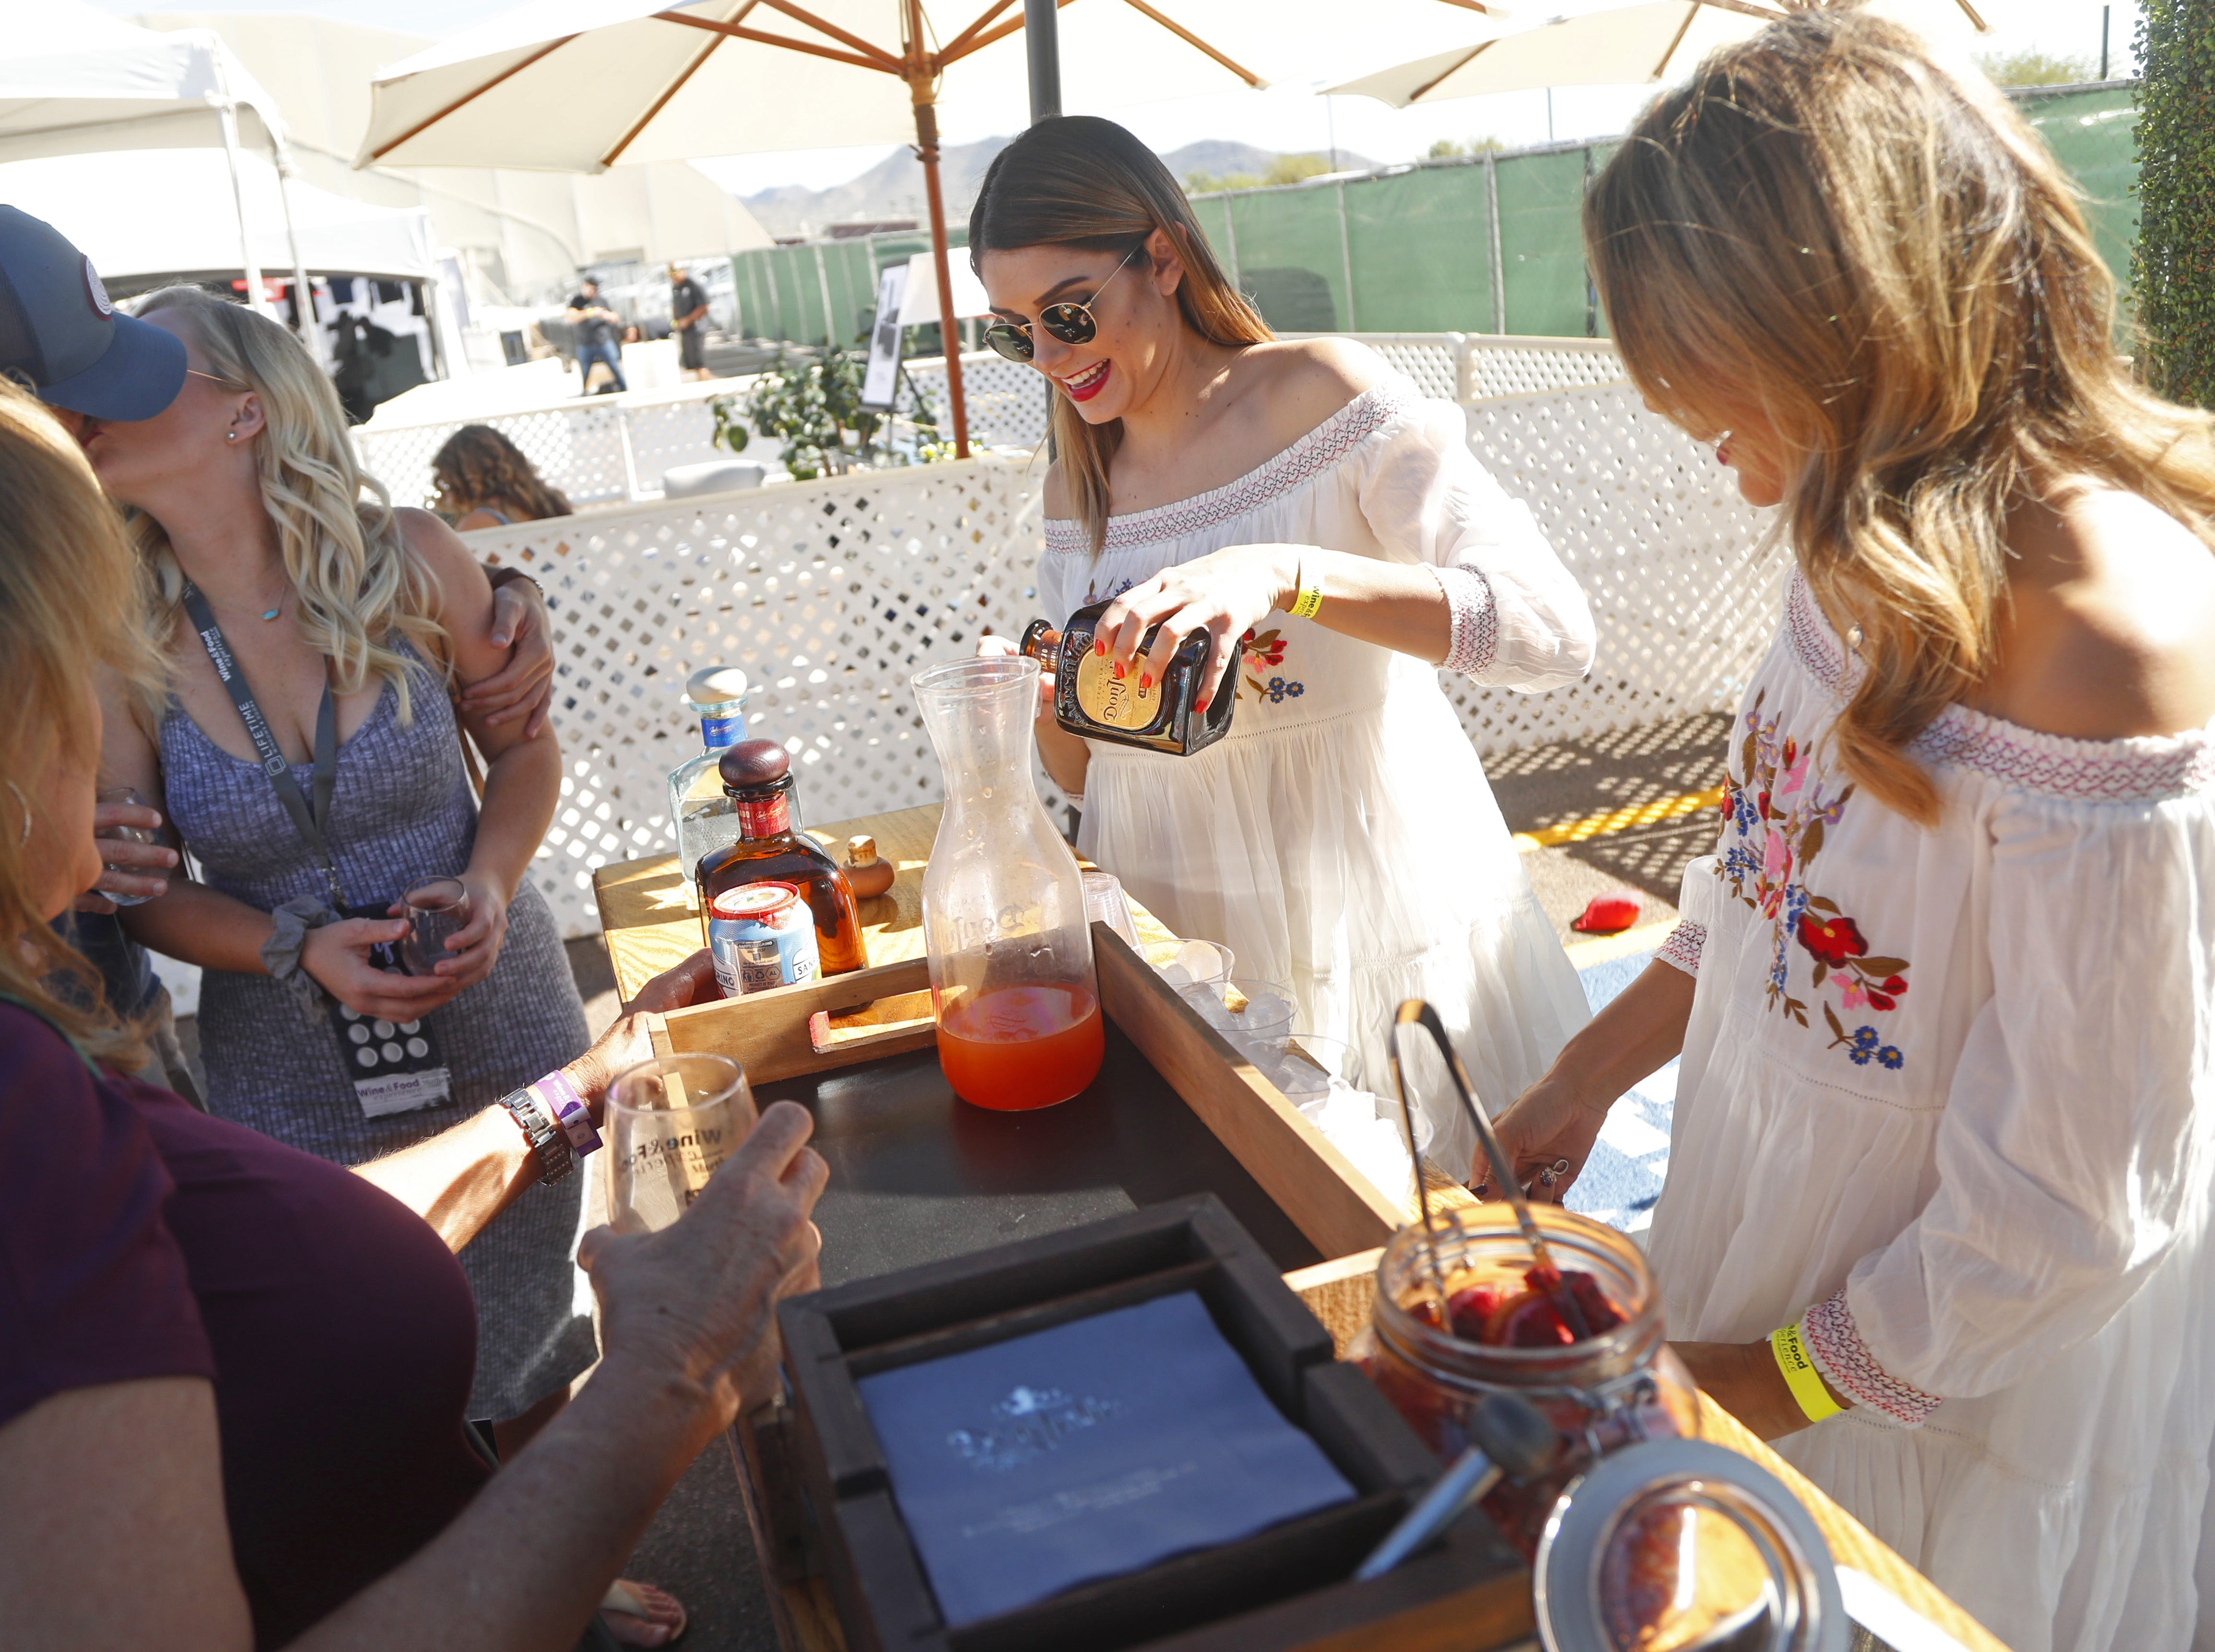 Victoria and Annabel pour shots of Don Julio tequila during the azcentral Wine & Food Experience at WestWorld of Scottsdale, Ariz. on Saturday, Nov. 3, 2018.